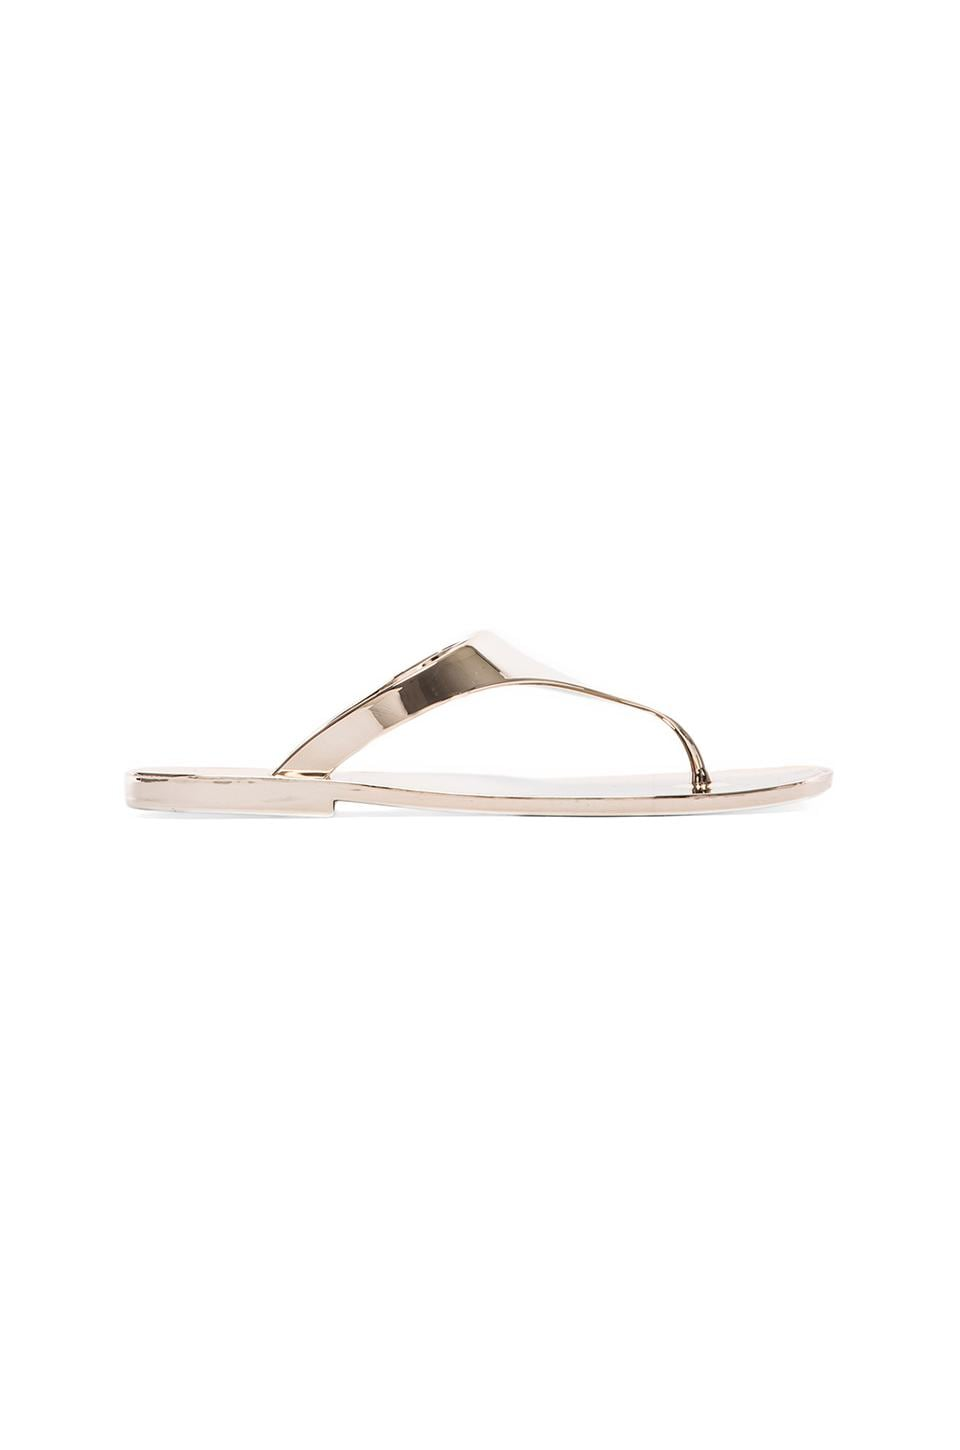 BCBGMAXAZRIA Sabba Metallic Sandal in Gold Dust